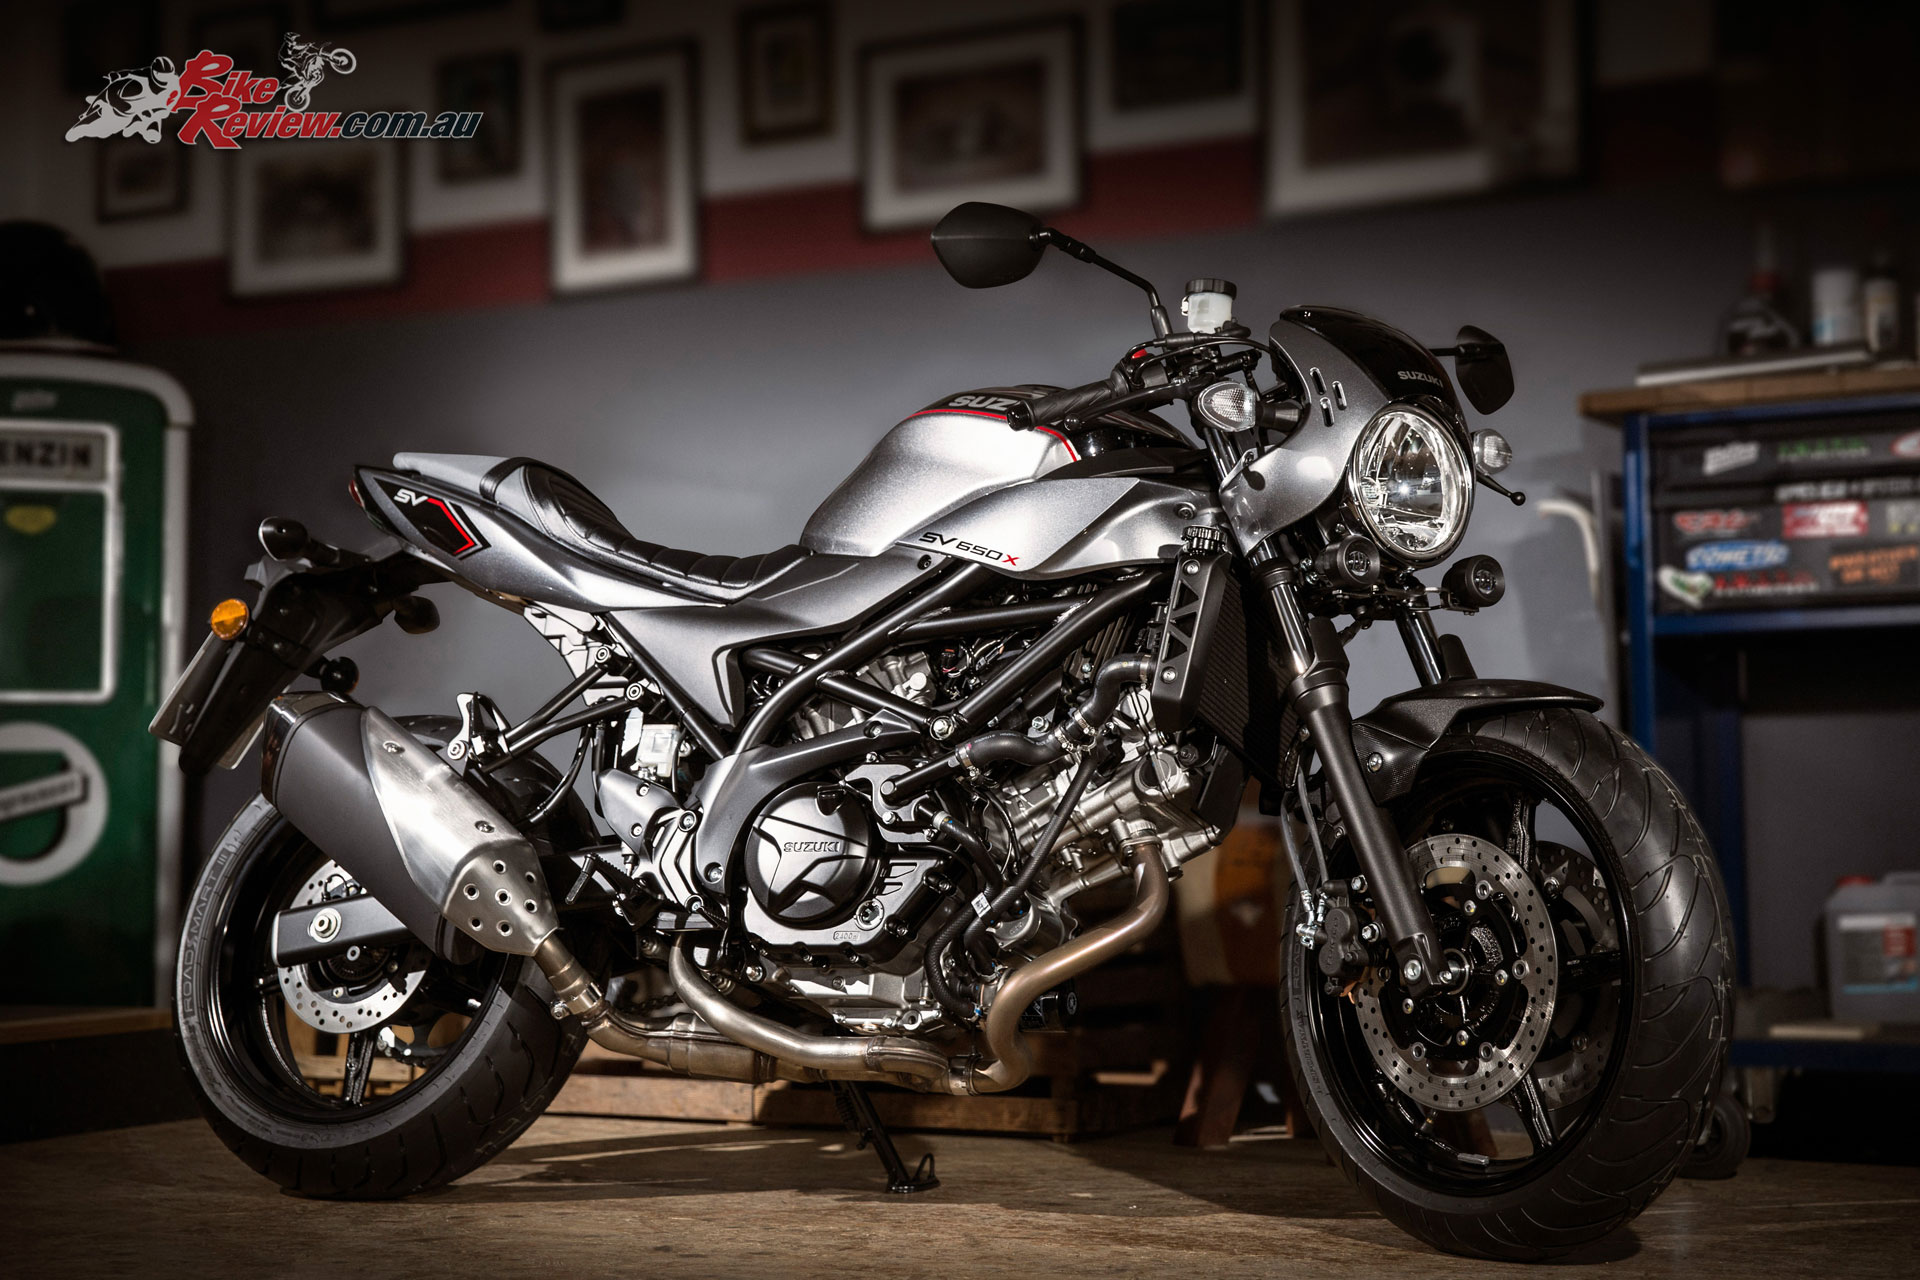 Triumph Cafe Racer >> Suzuki unveil 2018 SV650X 'Cafe Racer' at EICMA - Bike Review